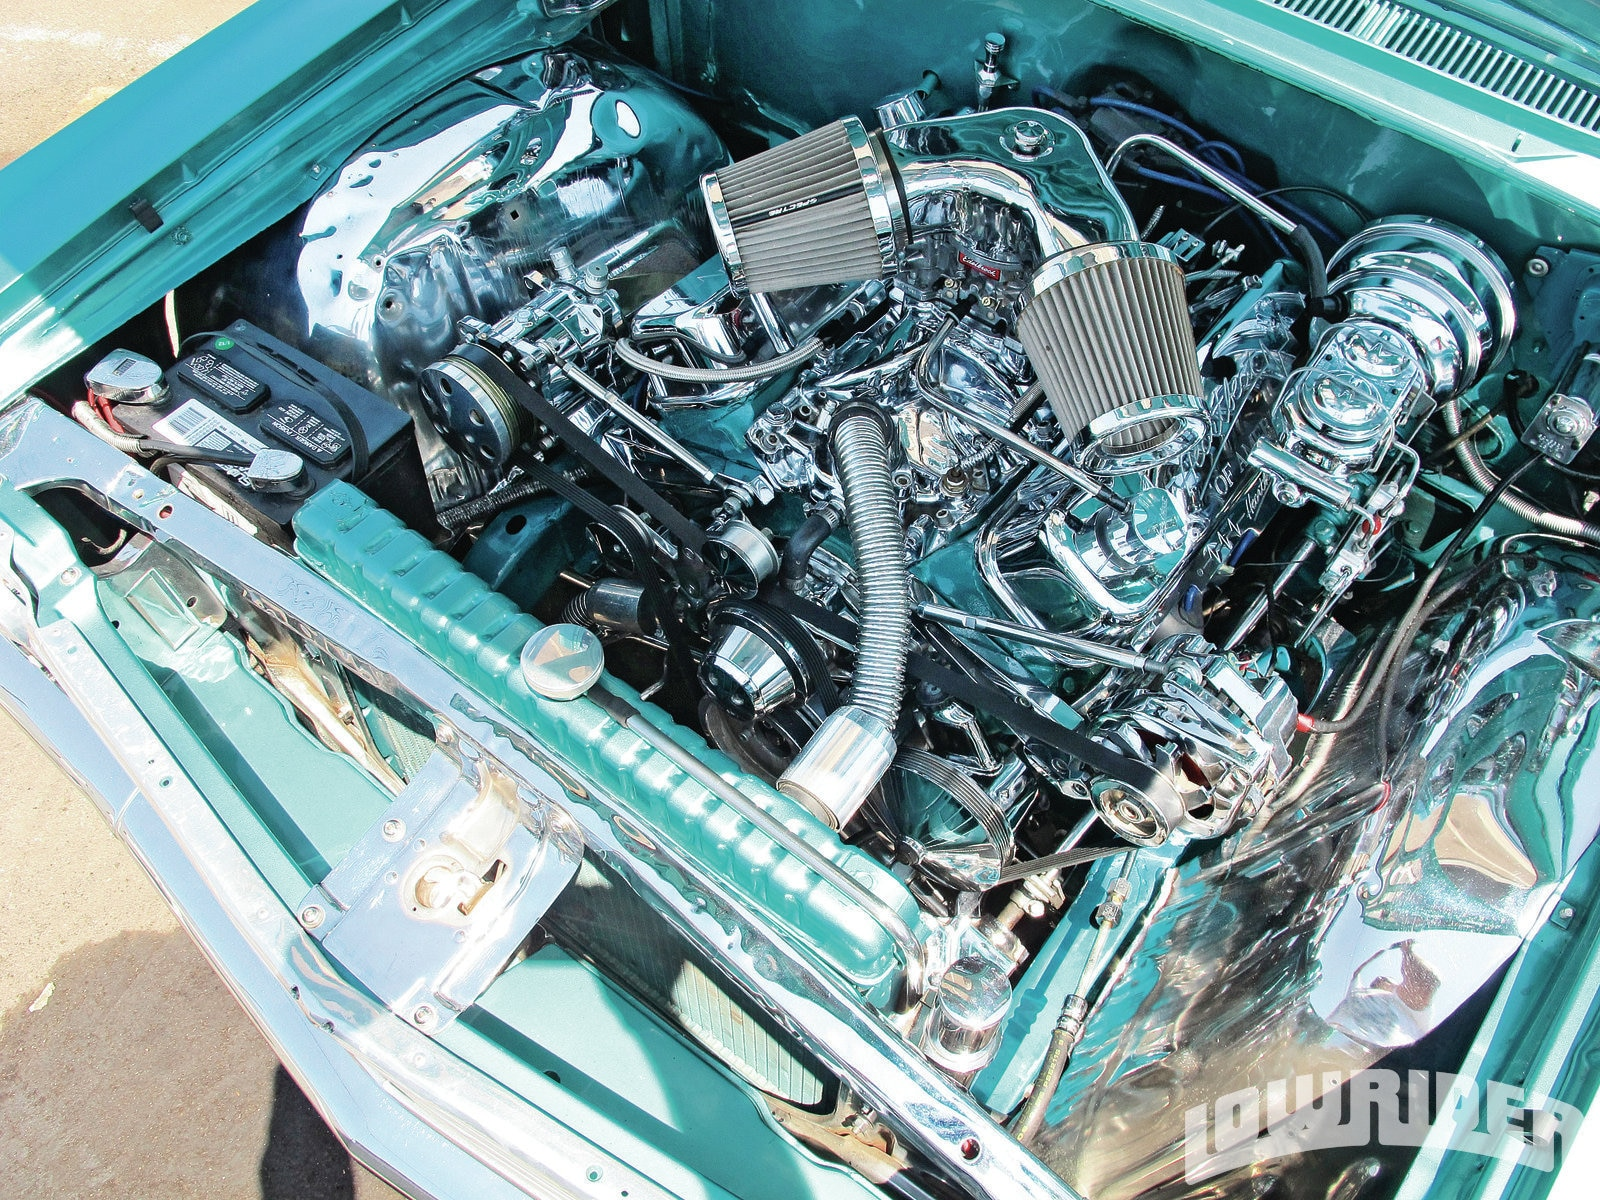 1964 Impala Engine Wiring Harness Data Diagrams 1969 Top 10 Chevrolet Features Rh Lowrider Com Chevy Diagram